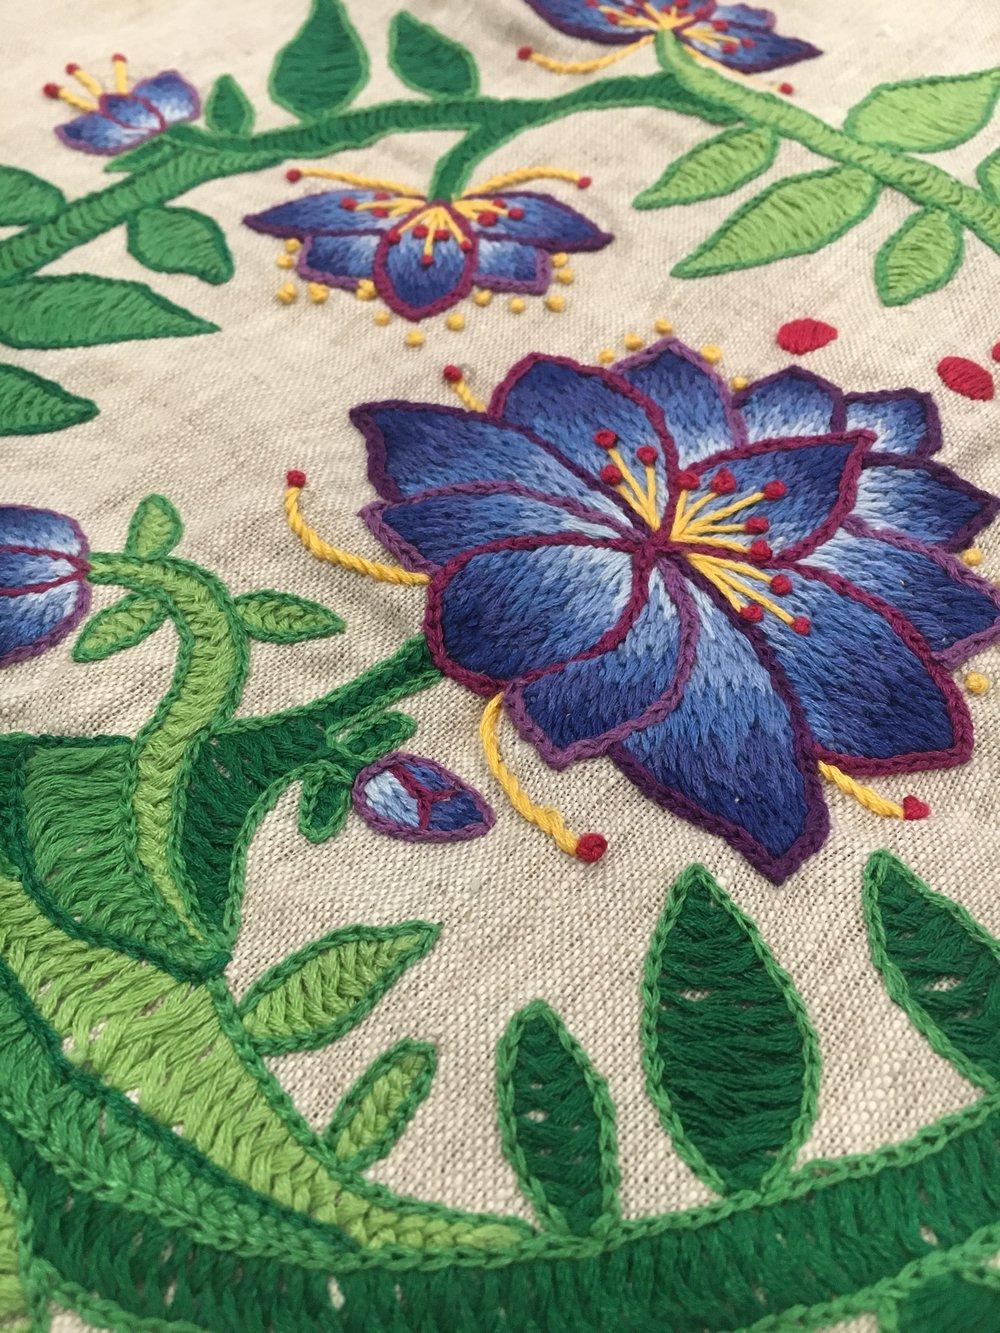 floral herringbone stitch embroidery with long and short stitch